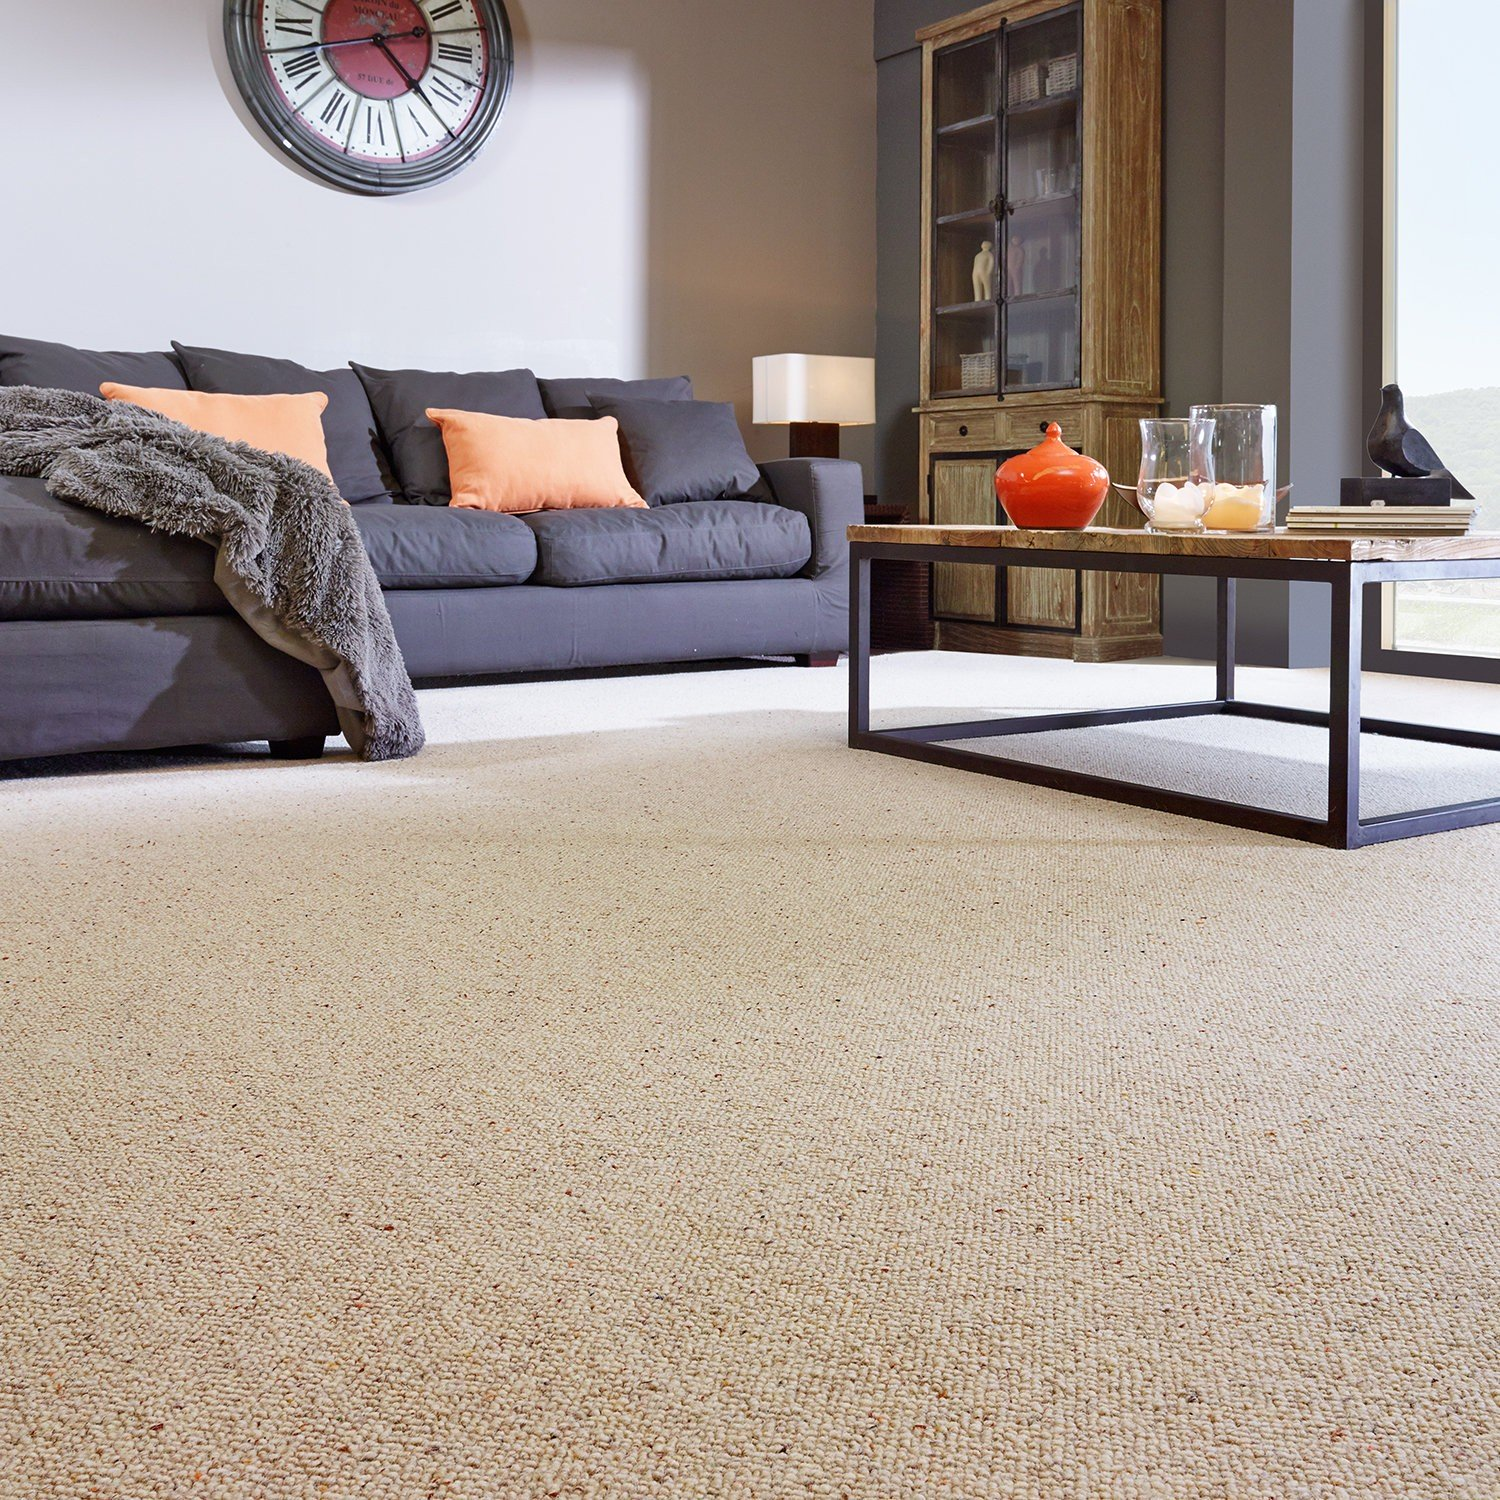 carpet design ideas ... ideas imposing modern carpet design for living room ... PIYOHSV